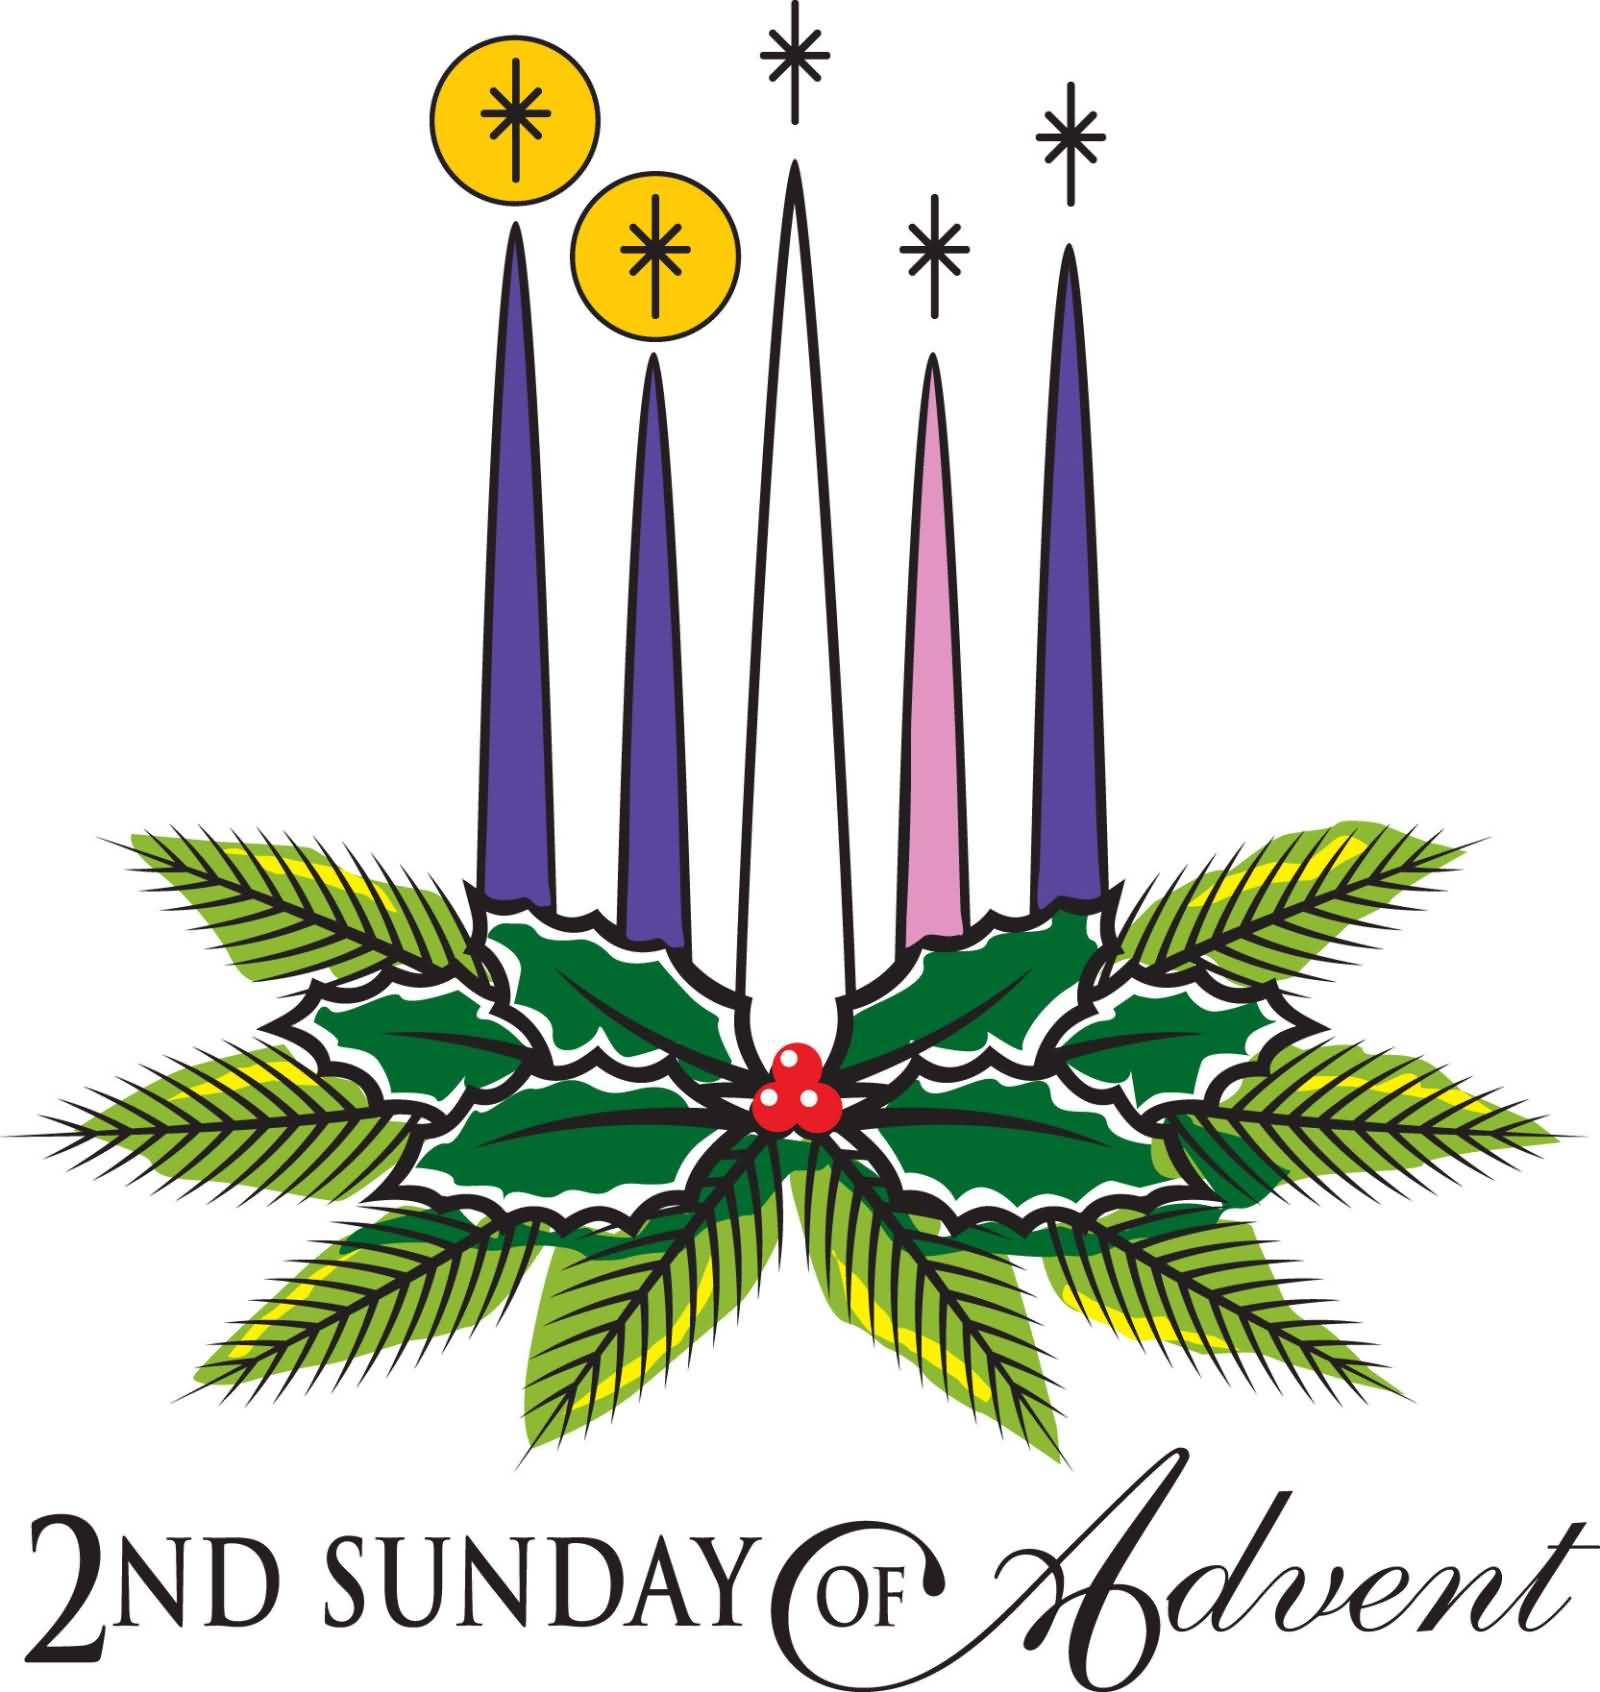 1600x1692 4th Sunday Of Advent Candles And Palm Leaves Clipart